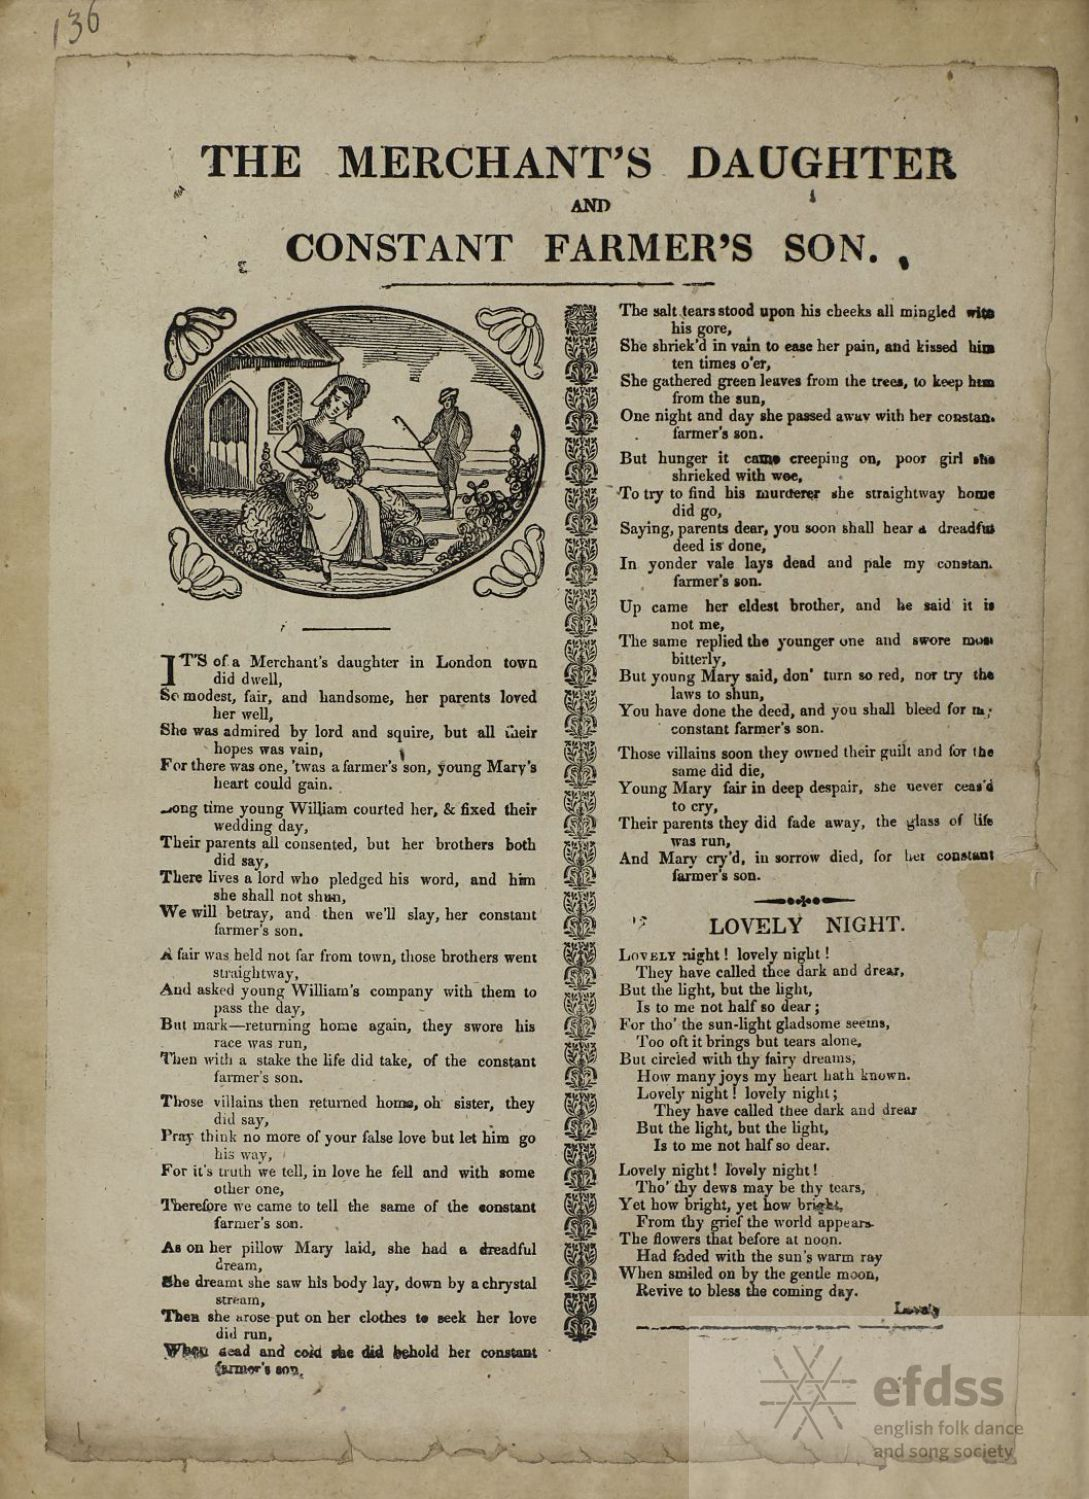 The Merchant's Daughter And Constant Farmer's Son - ballad sheet from the Frank Kidson Manuscript Collection, via the Full English archive.